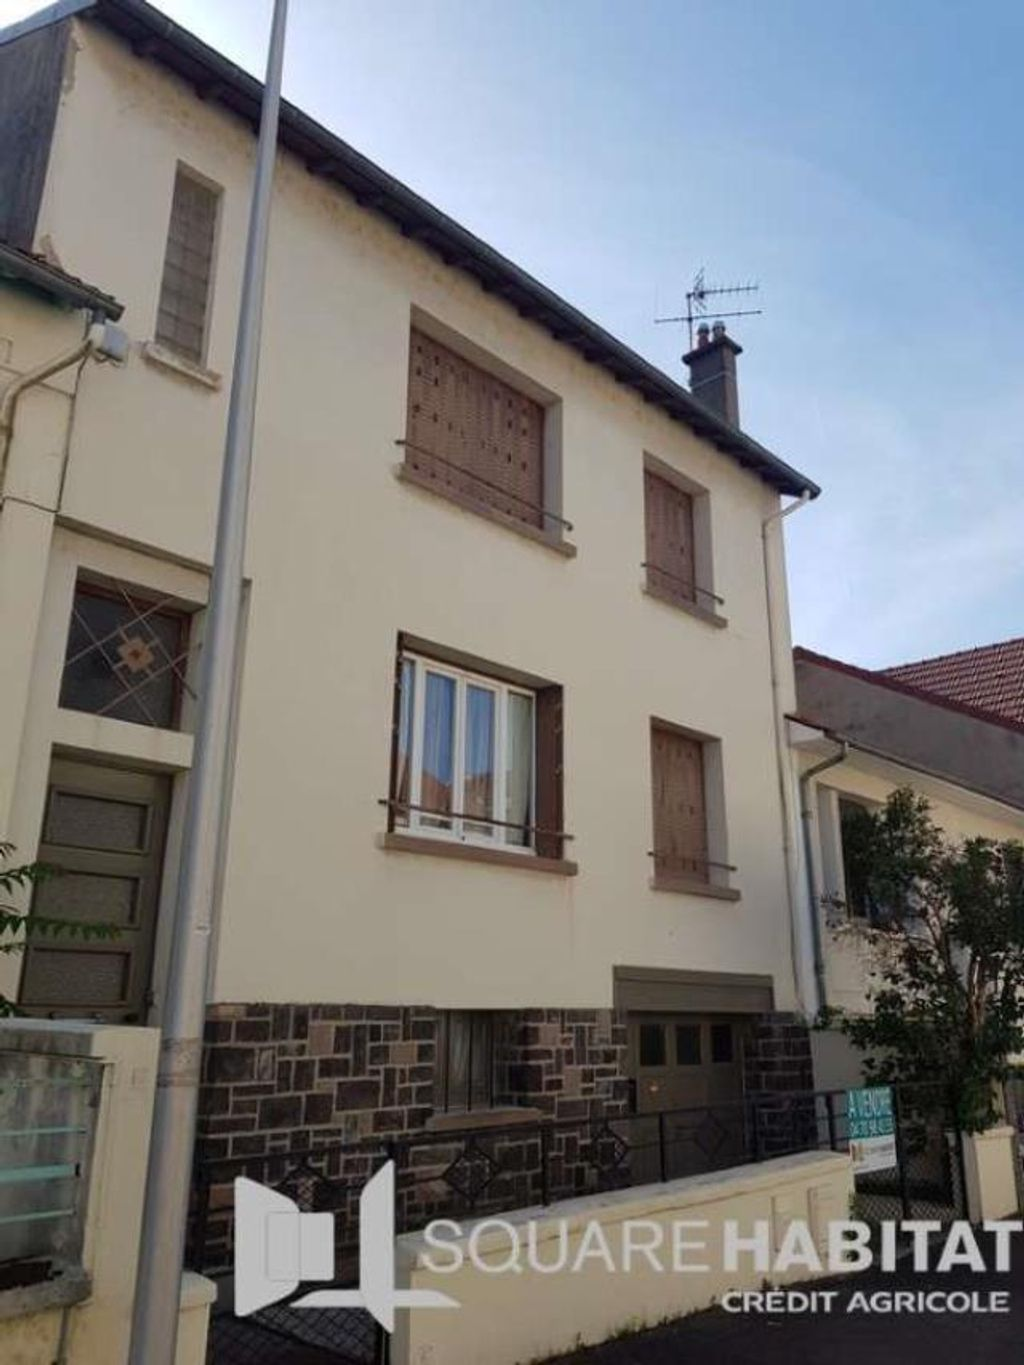 Achat maison 4 chambres 165 m² - Vichy